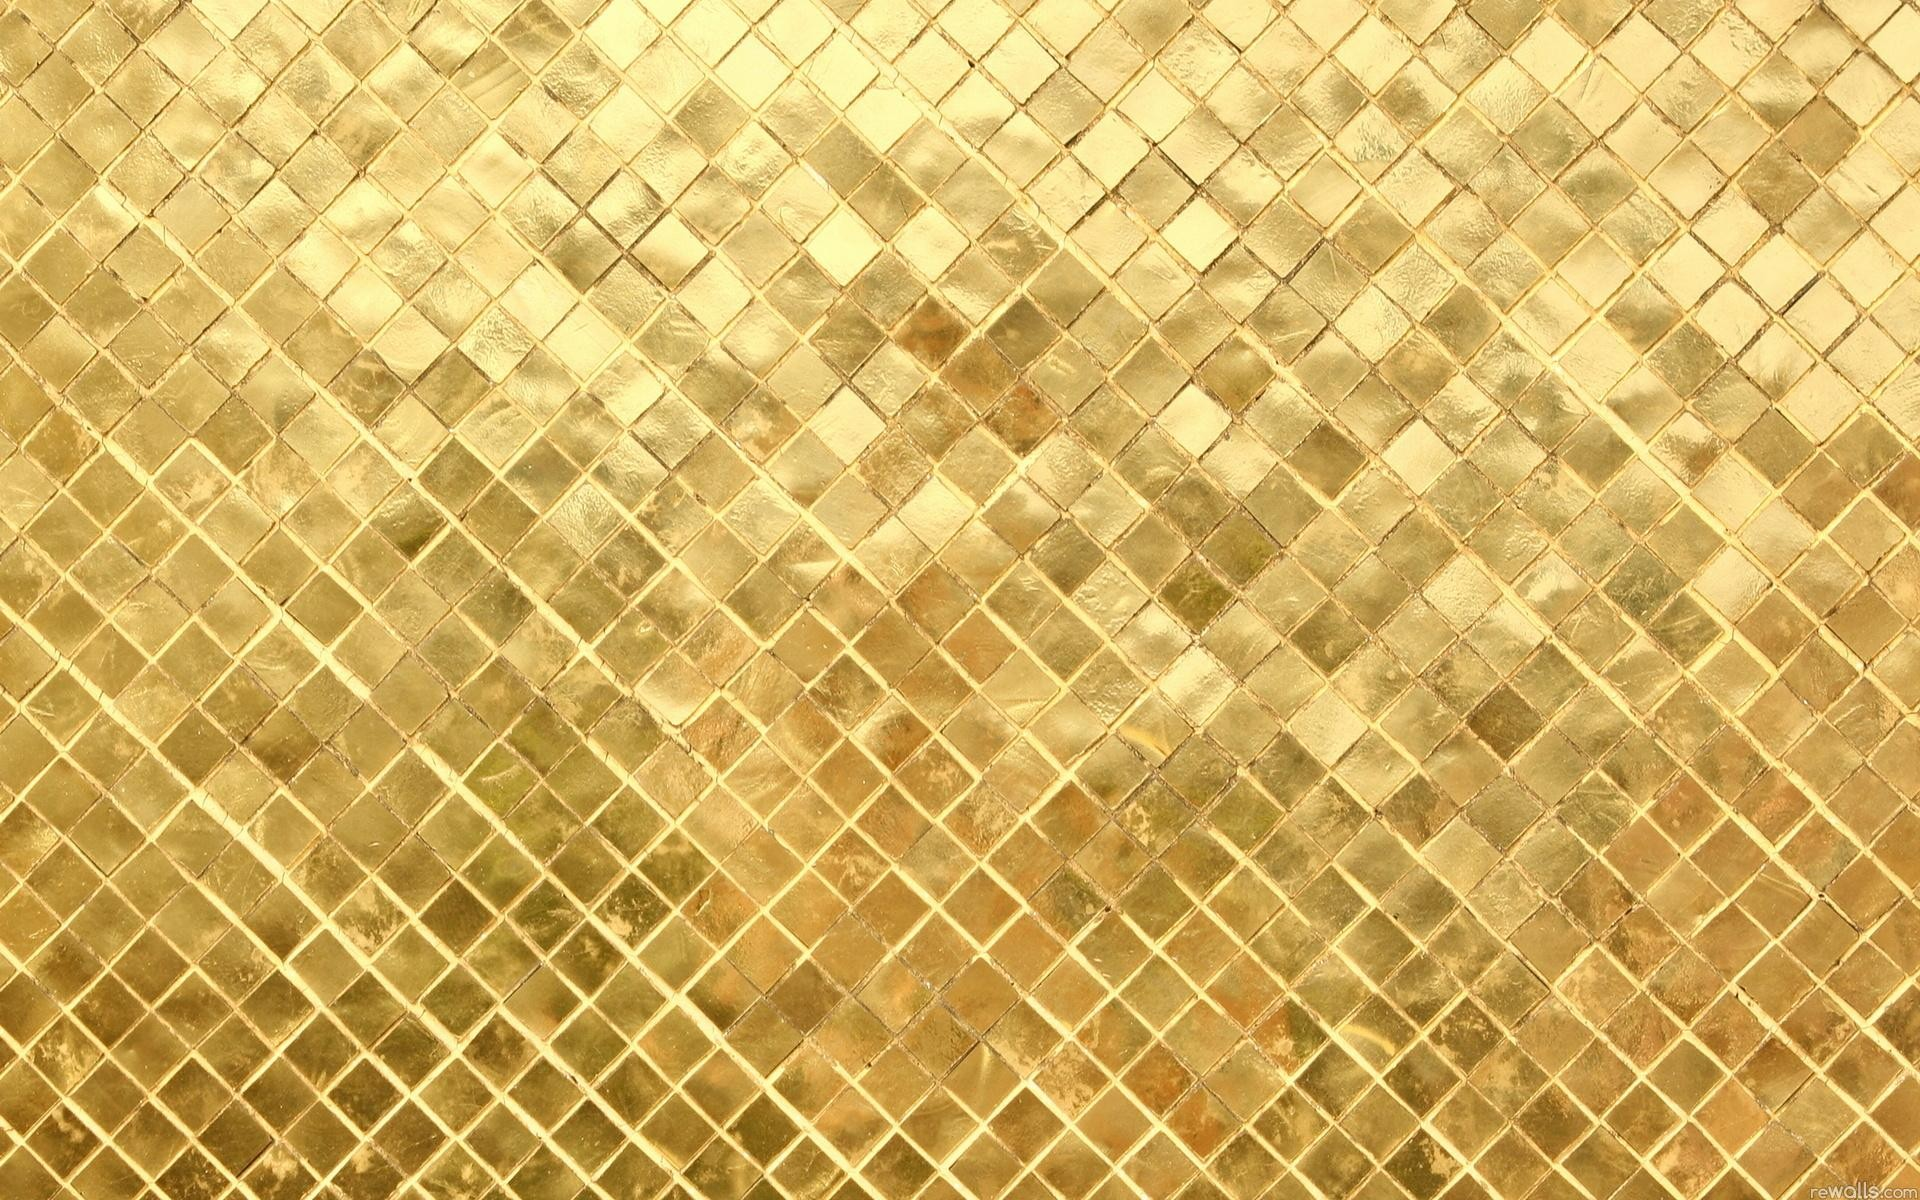 1920x1200 Gold Glitter Wallpaper HD Free Download.